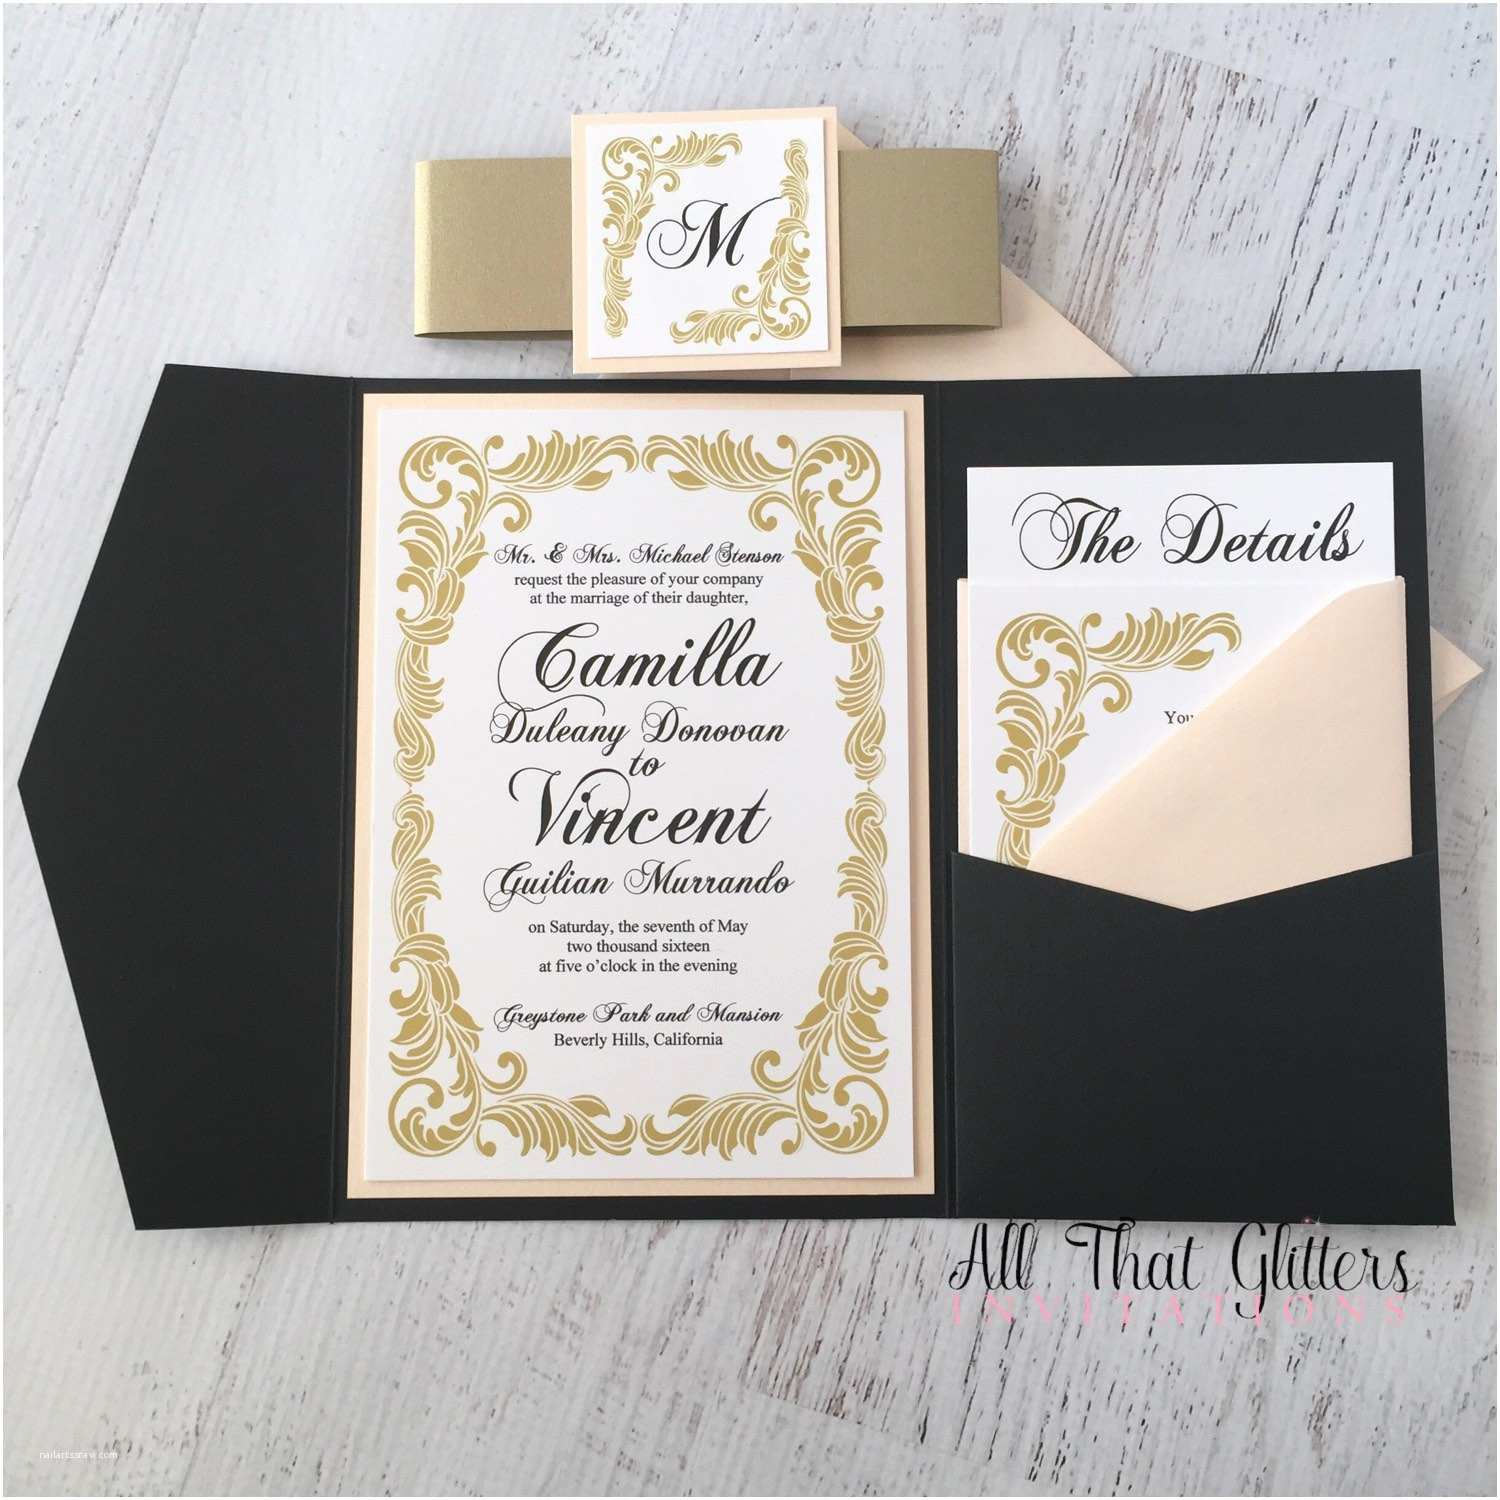 Blush and Gold Wedding Invitations Camilla Vintage Wedding Invitation Suite